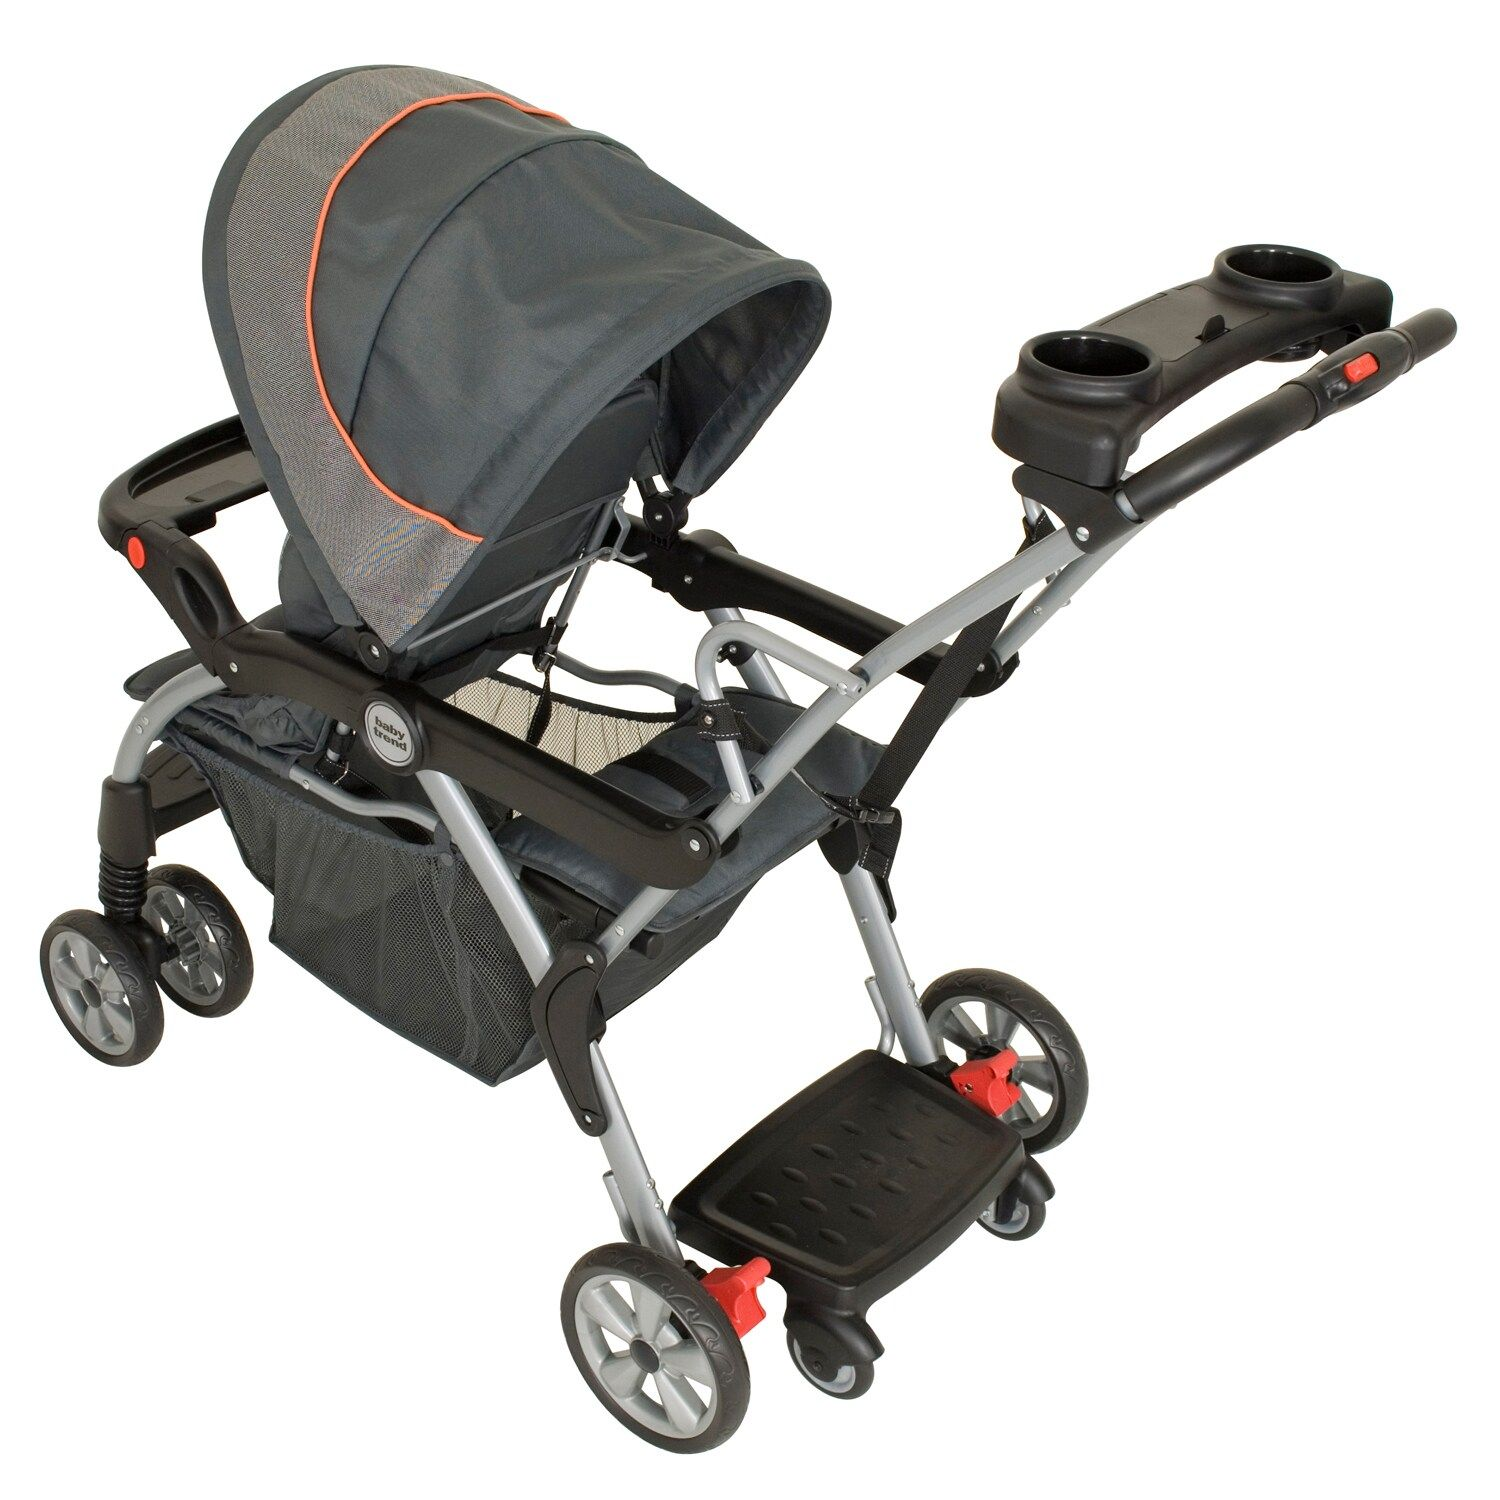 Baby Trend Sit 'N Stand Deluxe Stroller Sit, Trend,